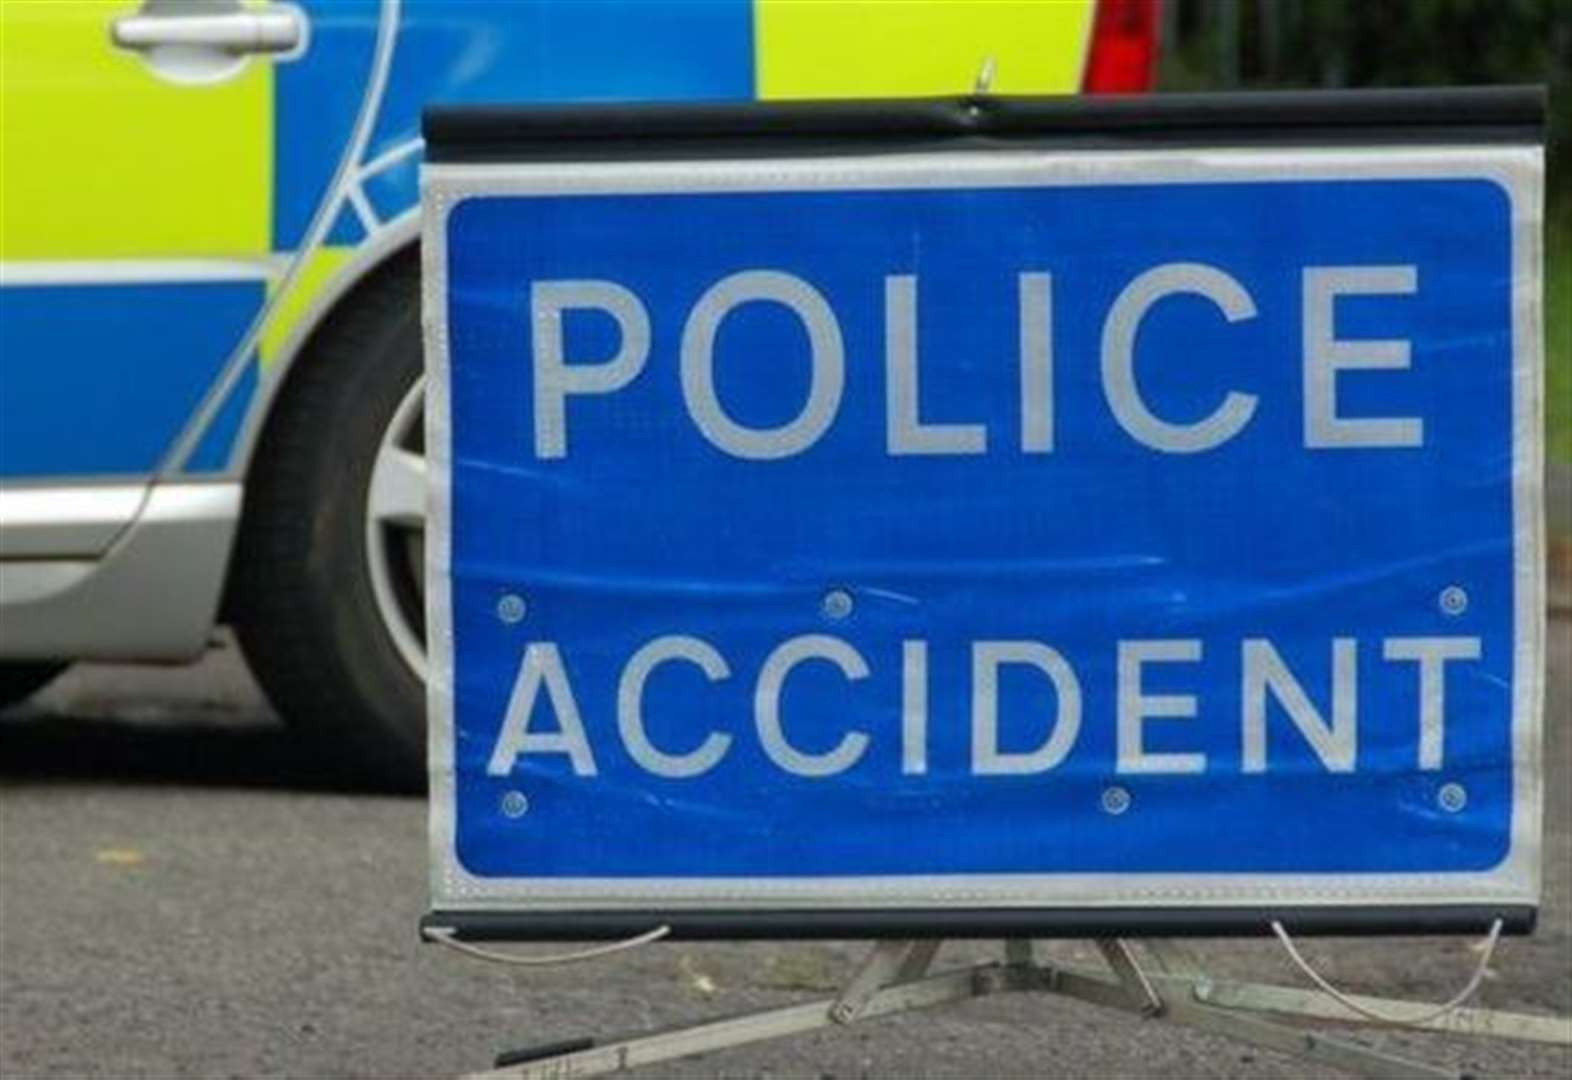 Accident shuts A17 in both directions